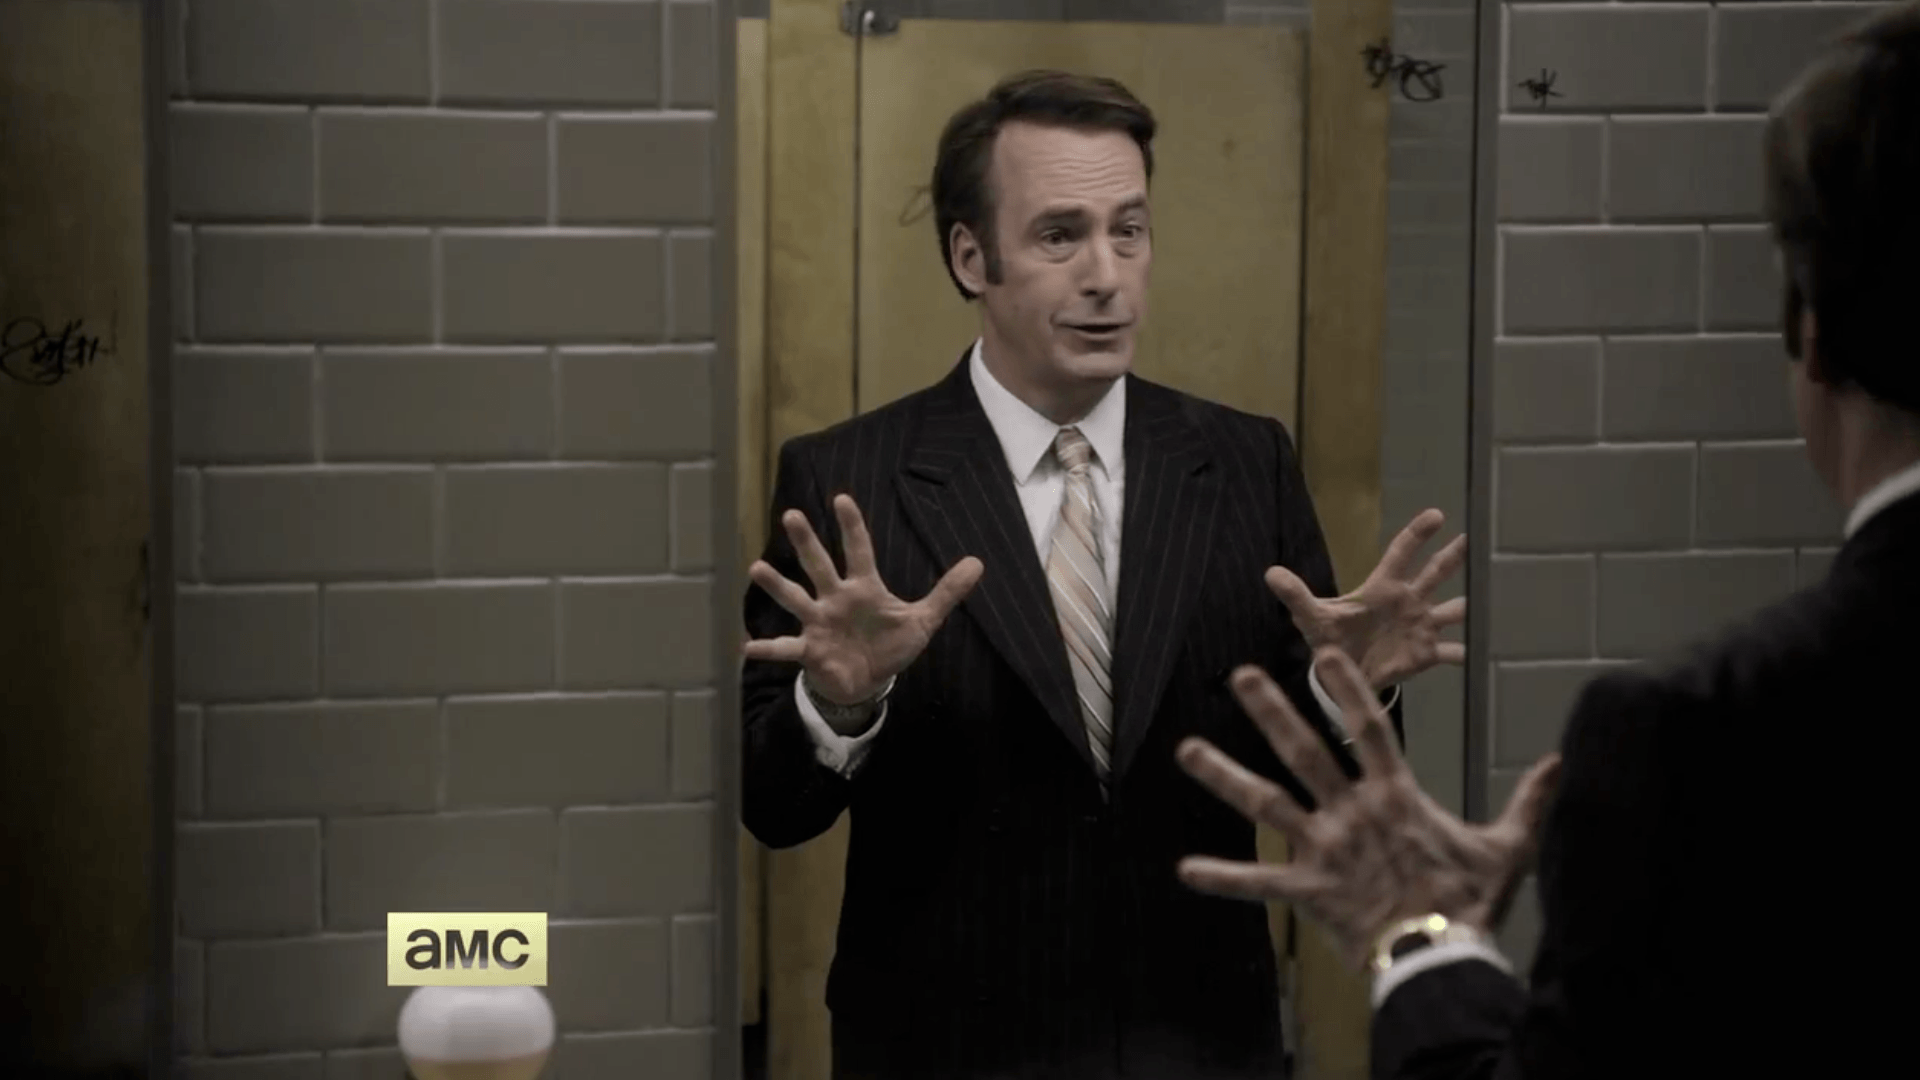 Better Call Saul Wallpapers, Pictures, Image